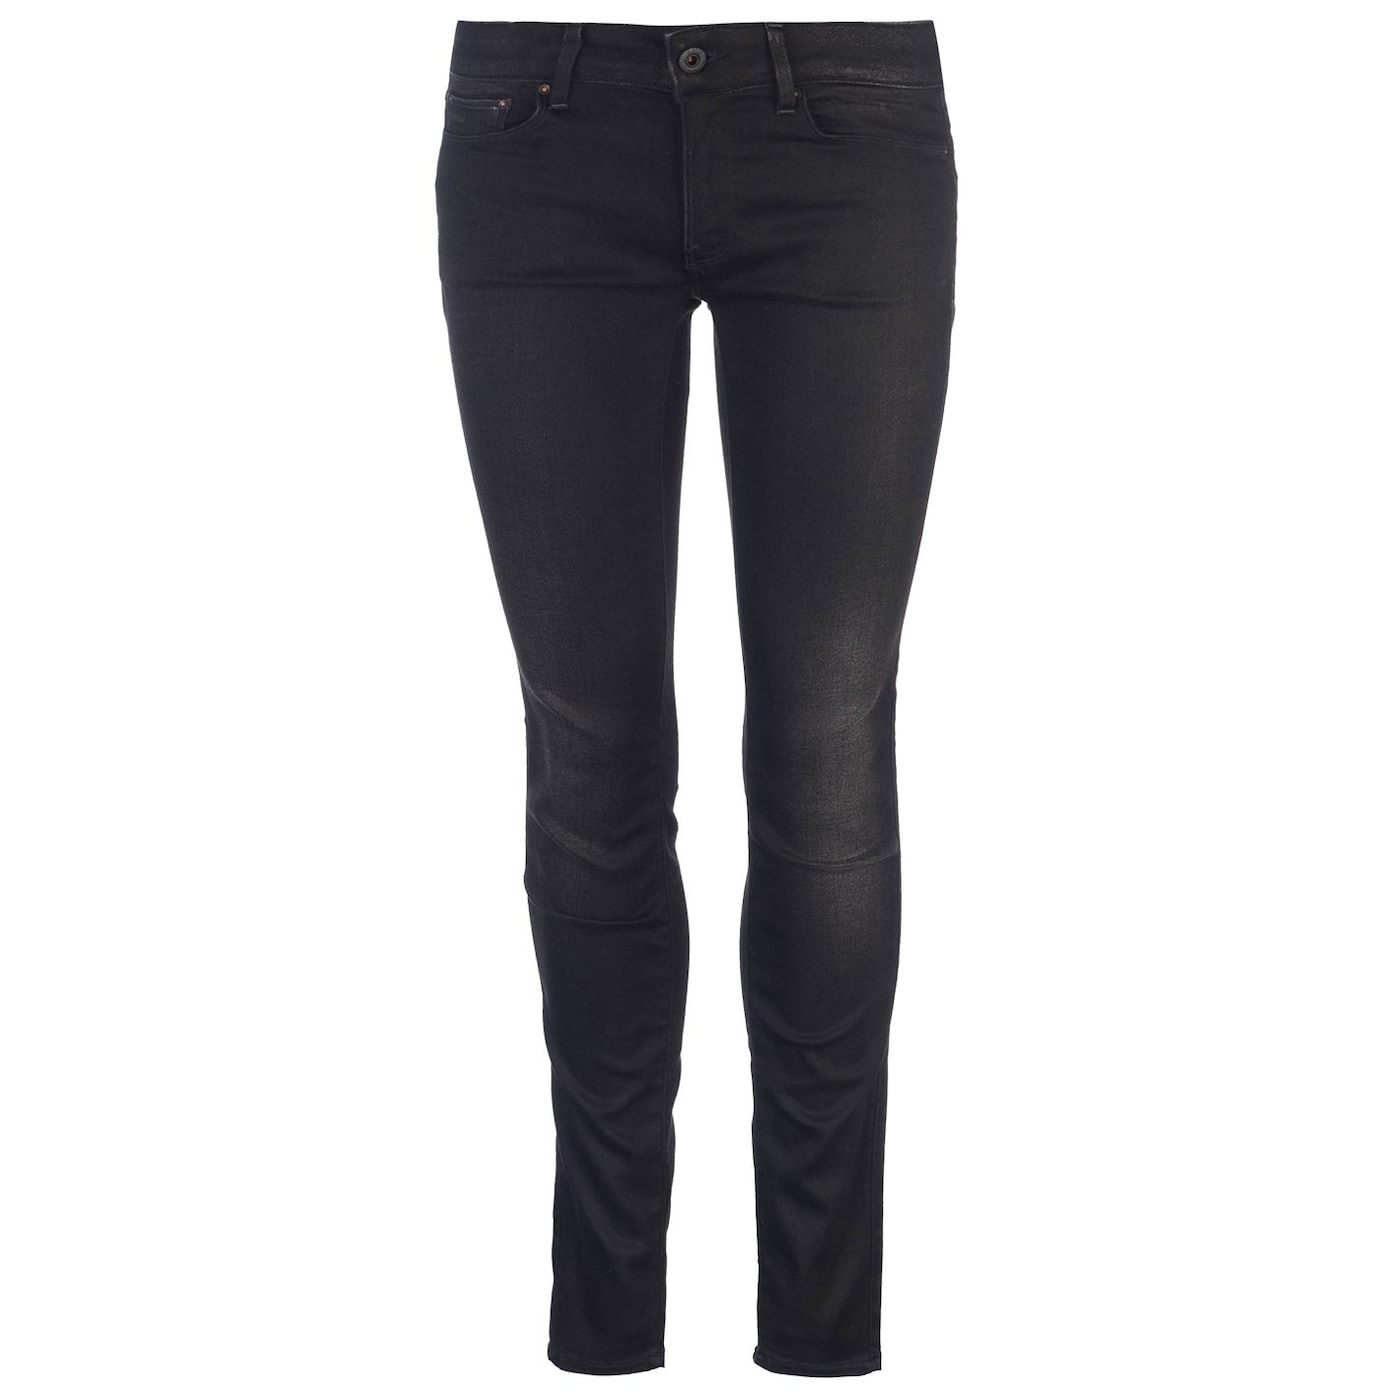 G Star 301 High Skinny Womens Jeans